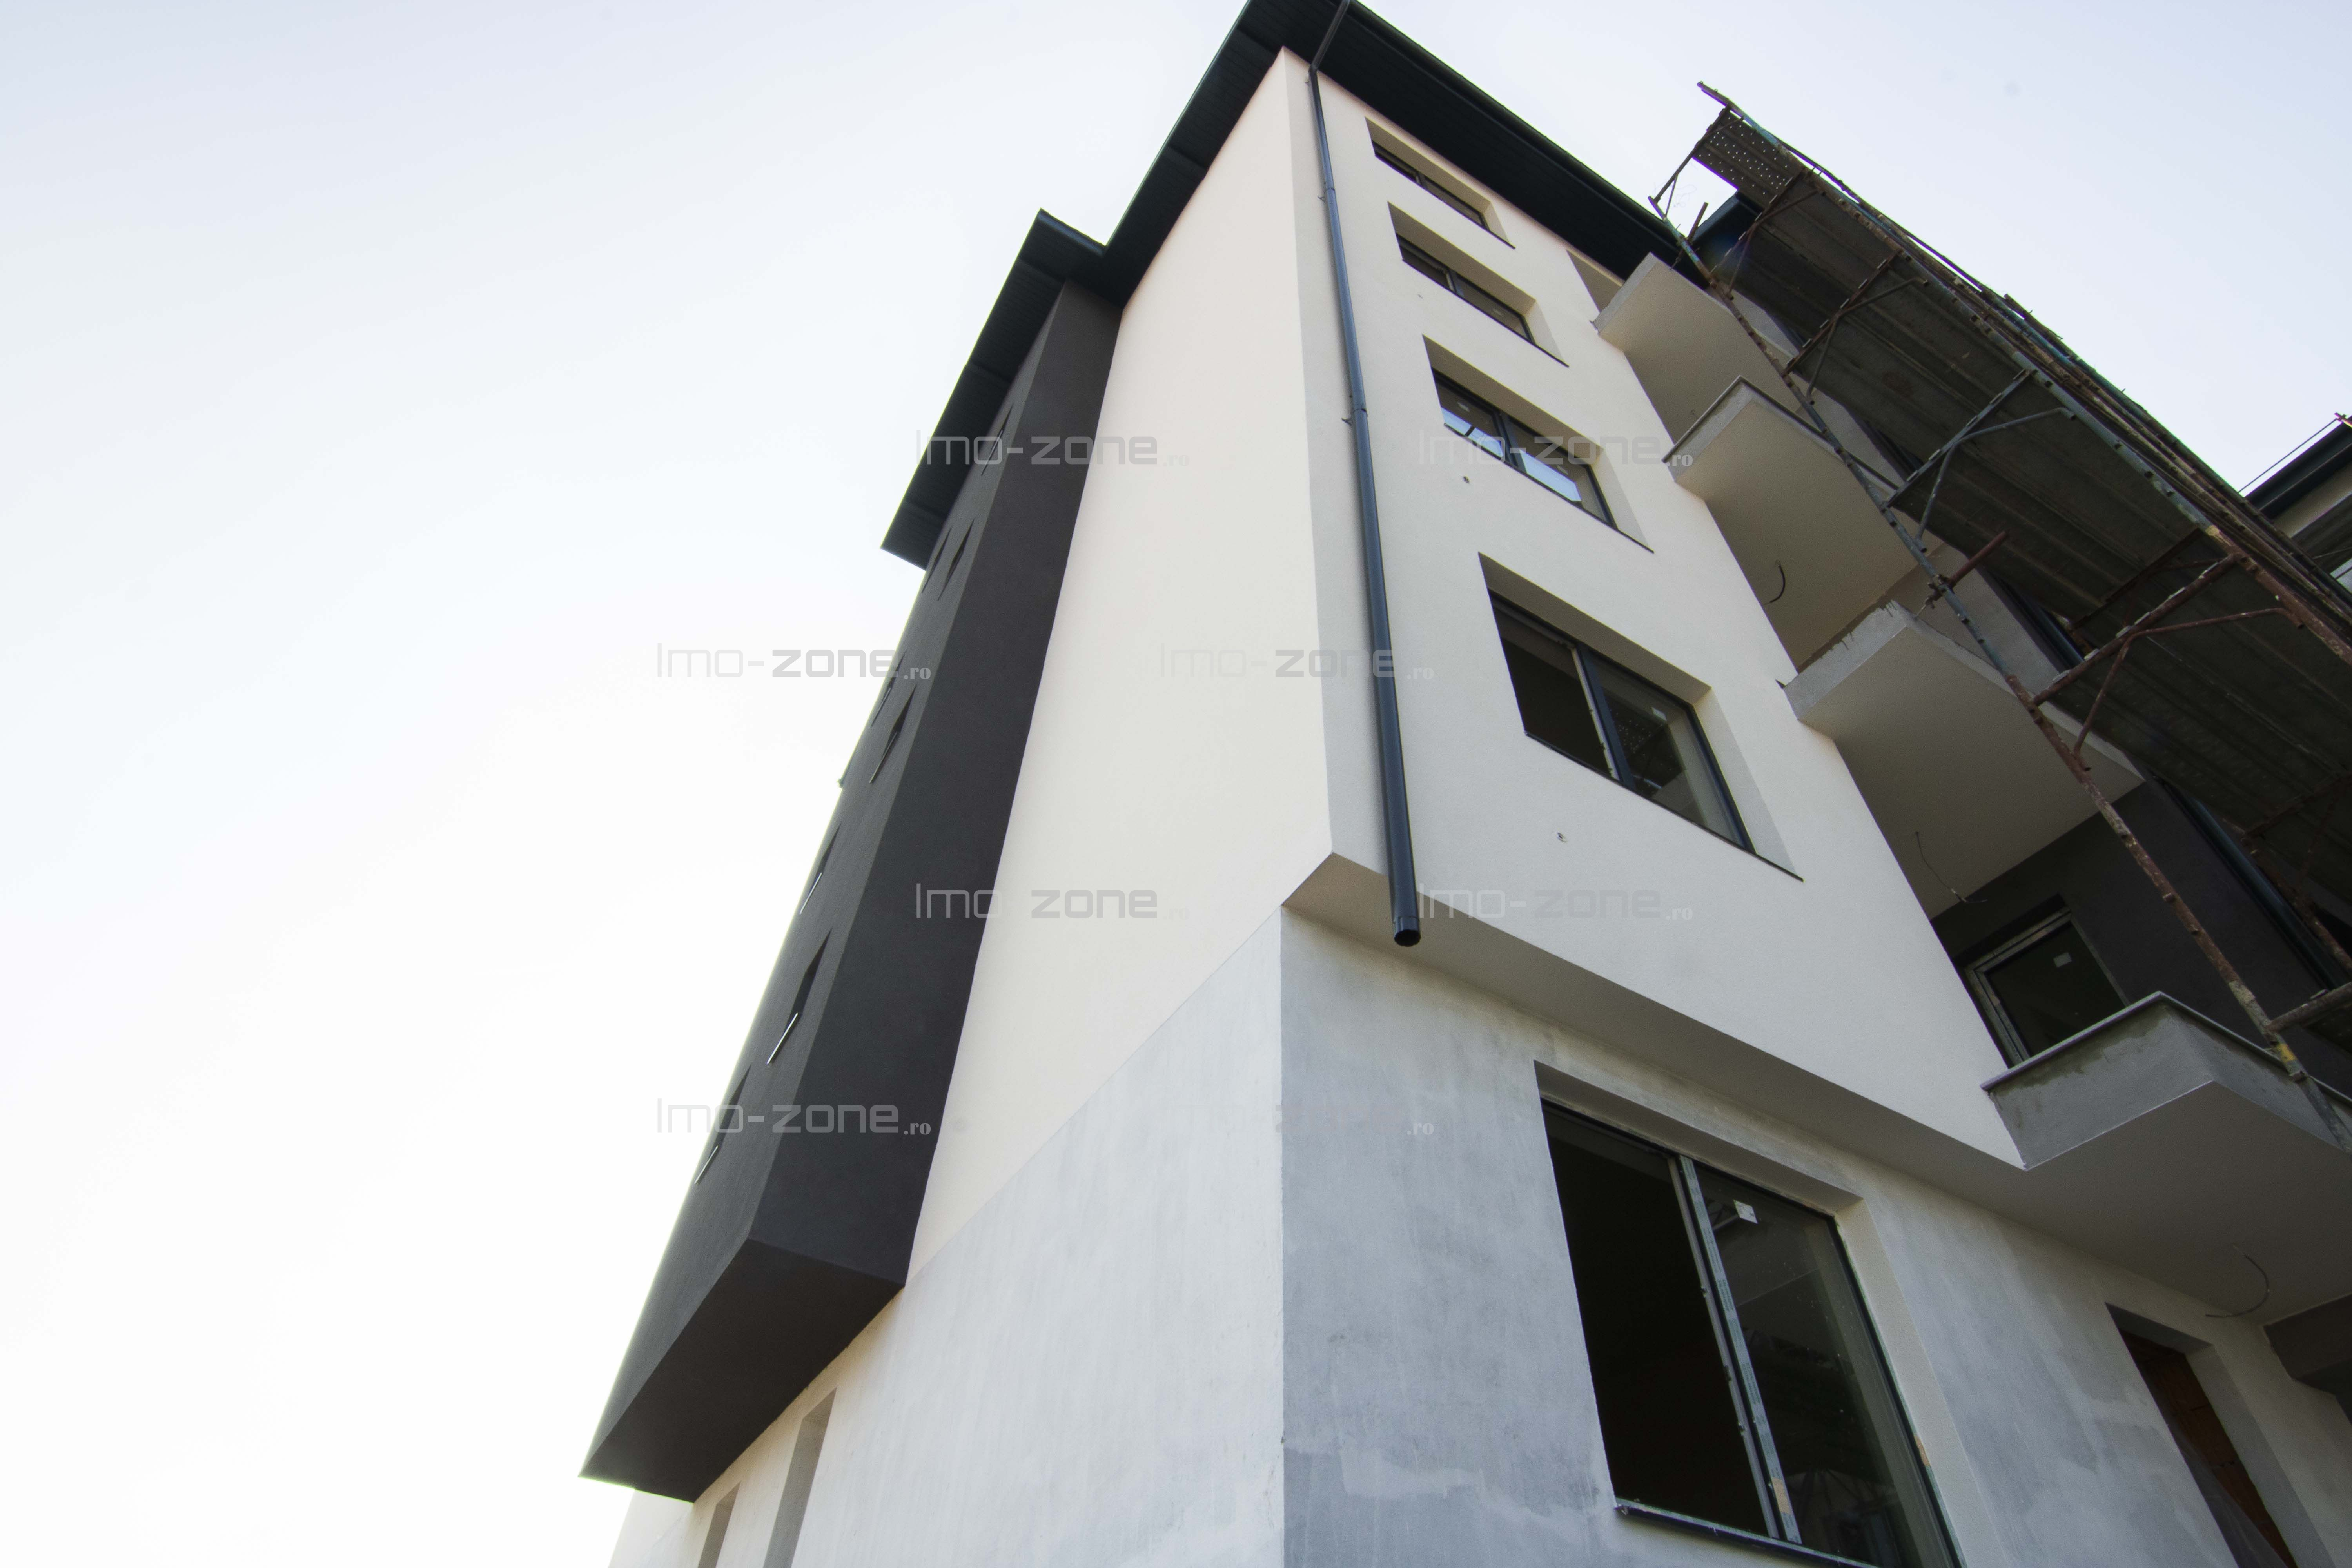 COMISION 0% - 3 CAMERE modern, spatios, FINISAT, 81 MP + TERASA 18 MP